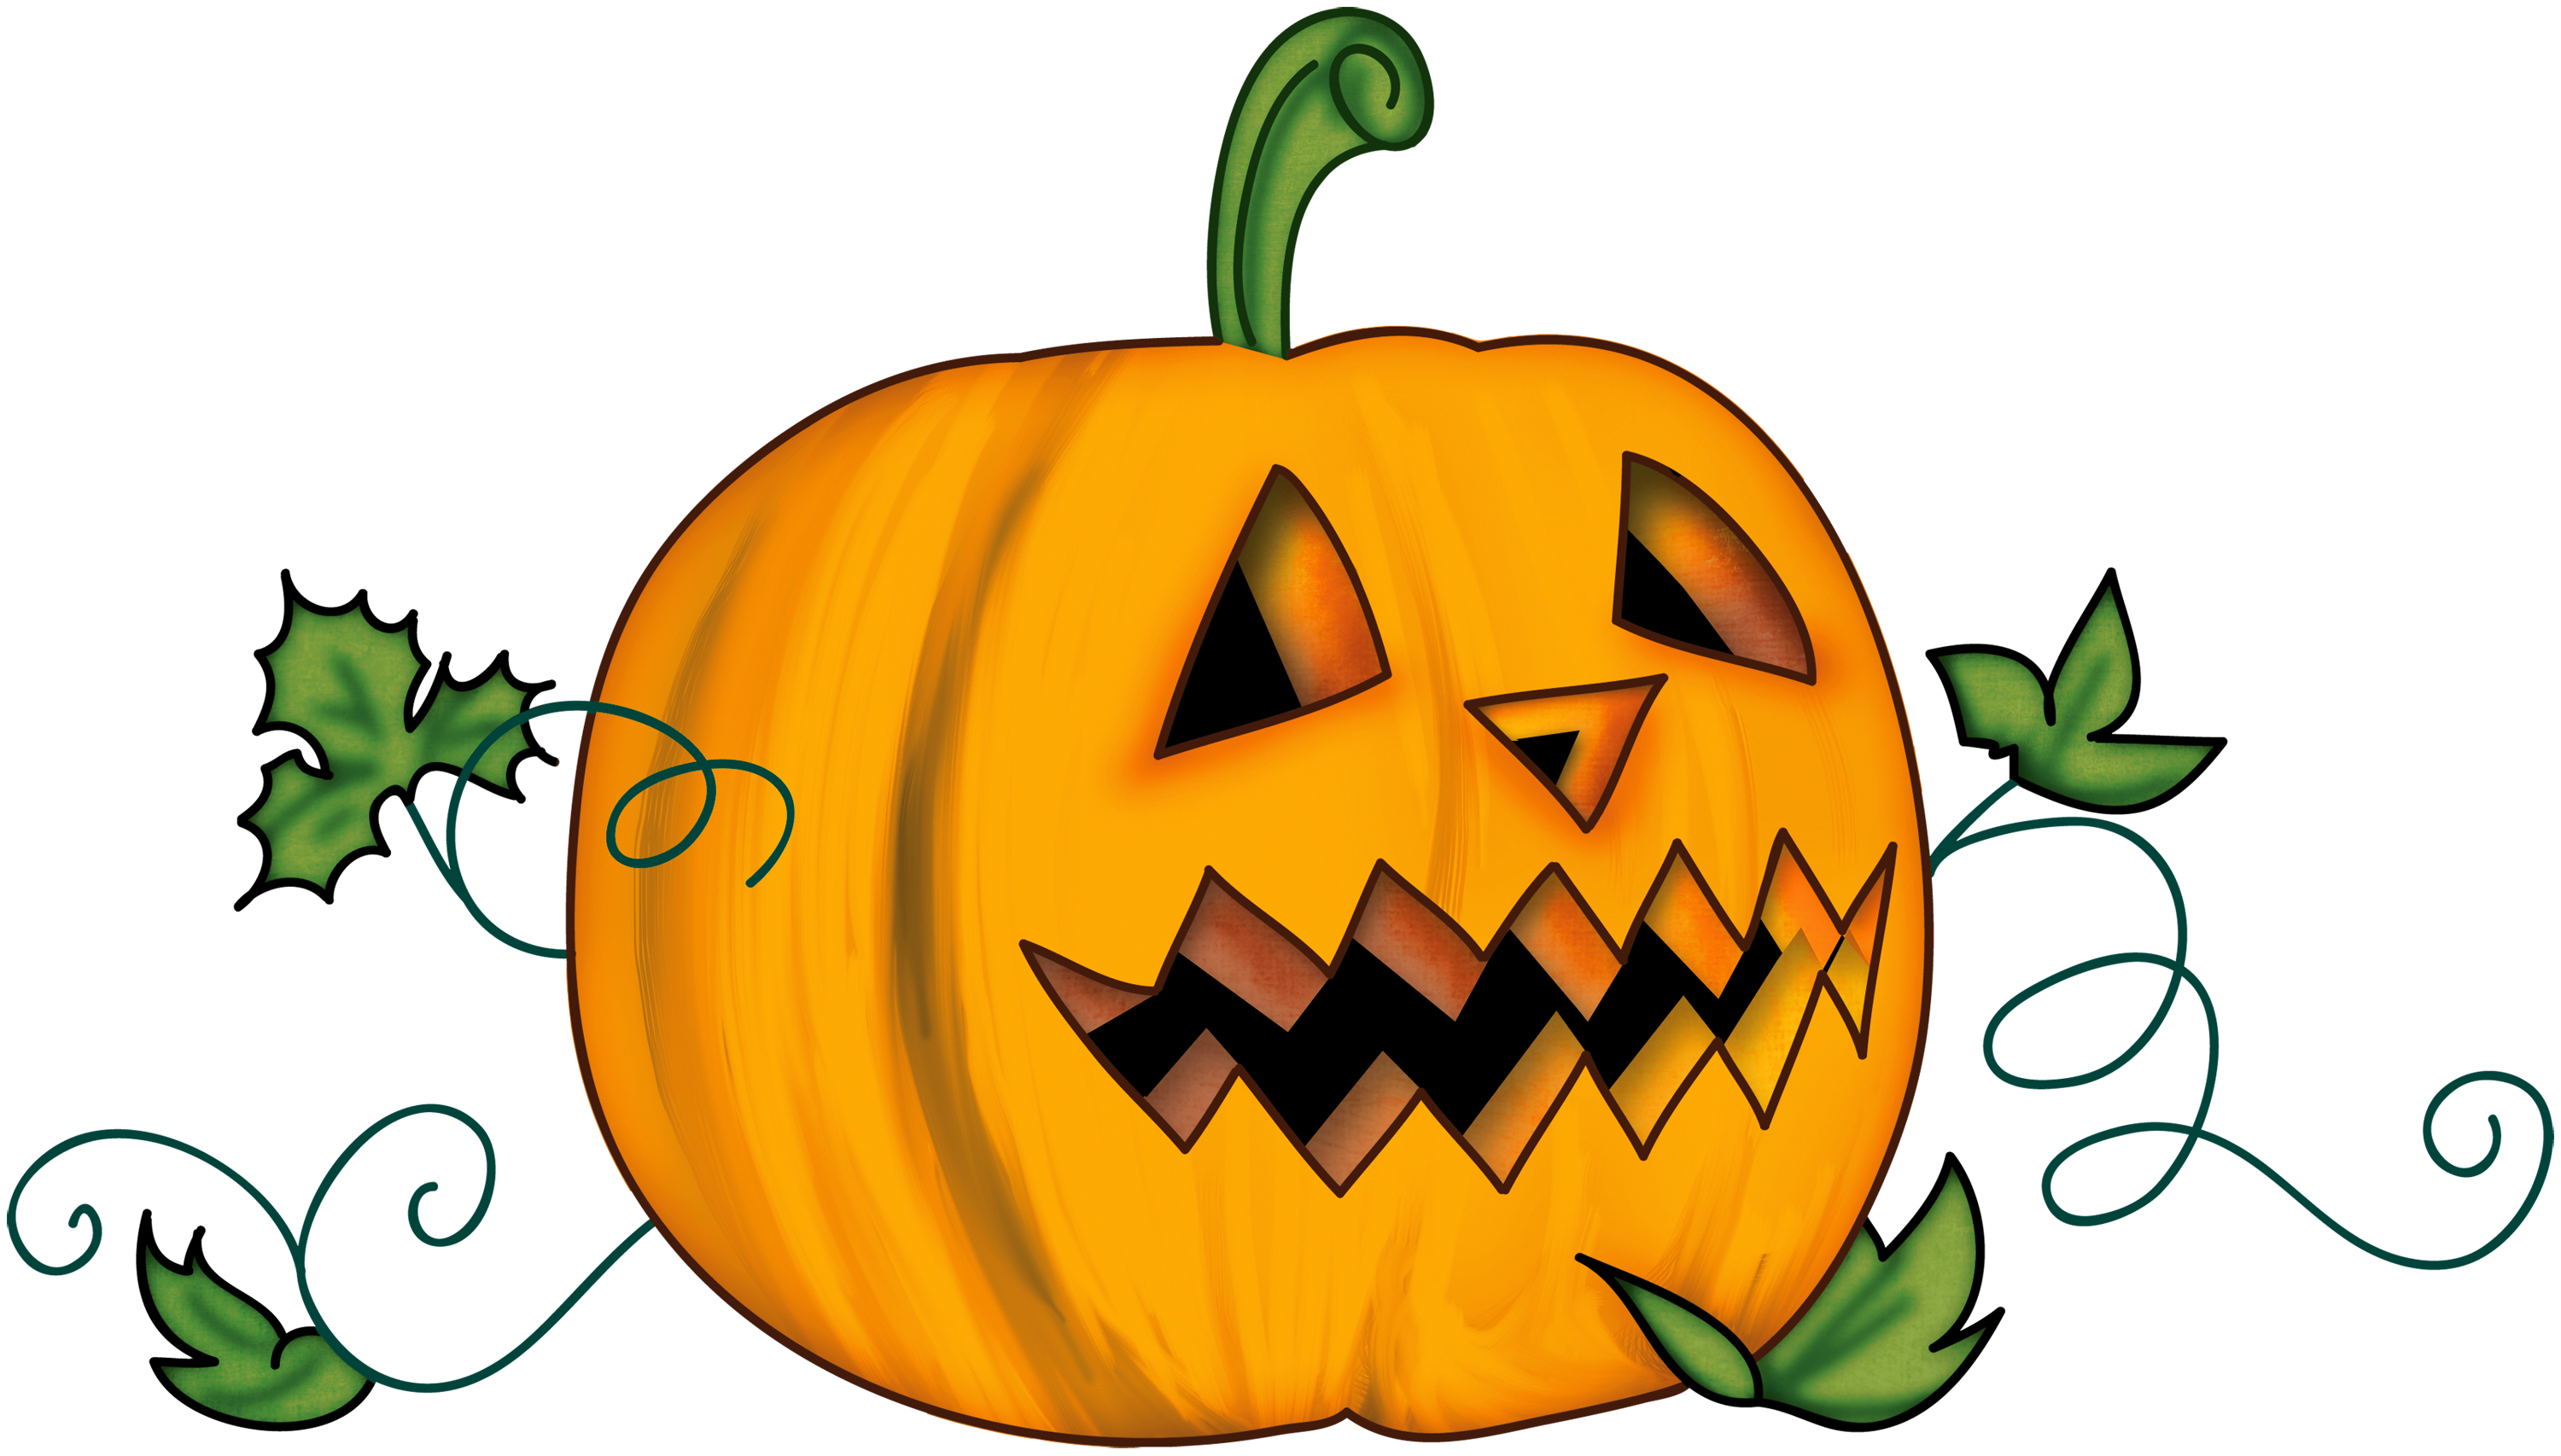 Transparent Halloween Clipart Halloween -Transparent Halloween Clipart Halloween Pumpkin Clip Art-15